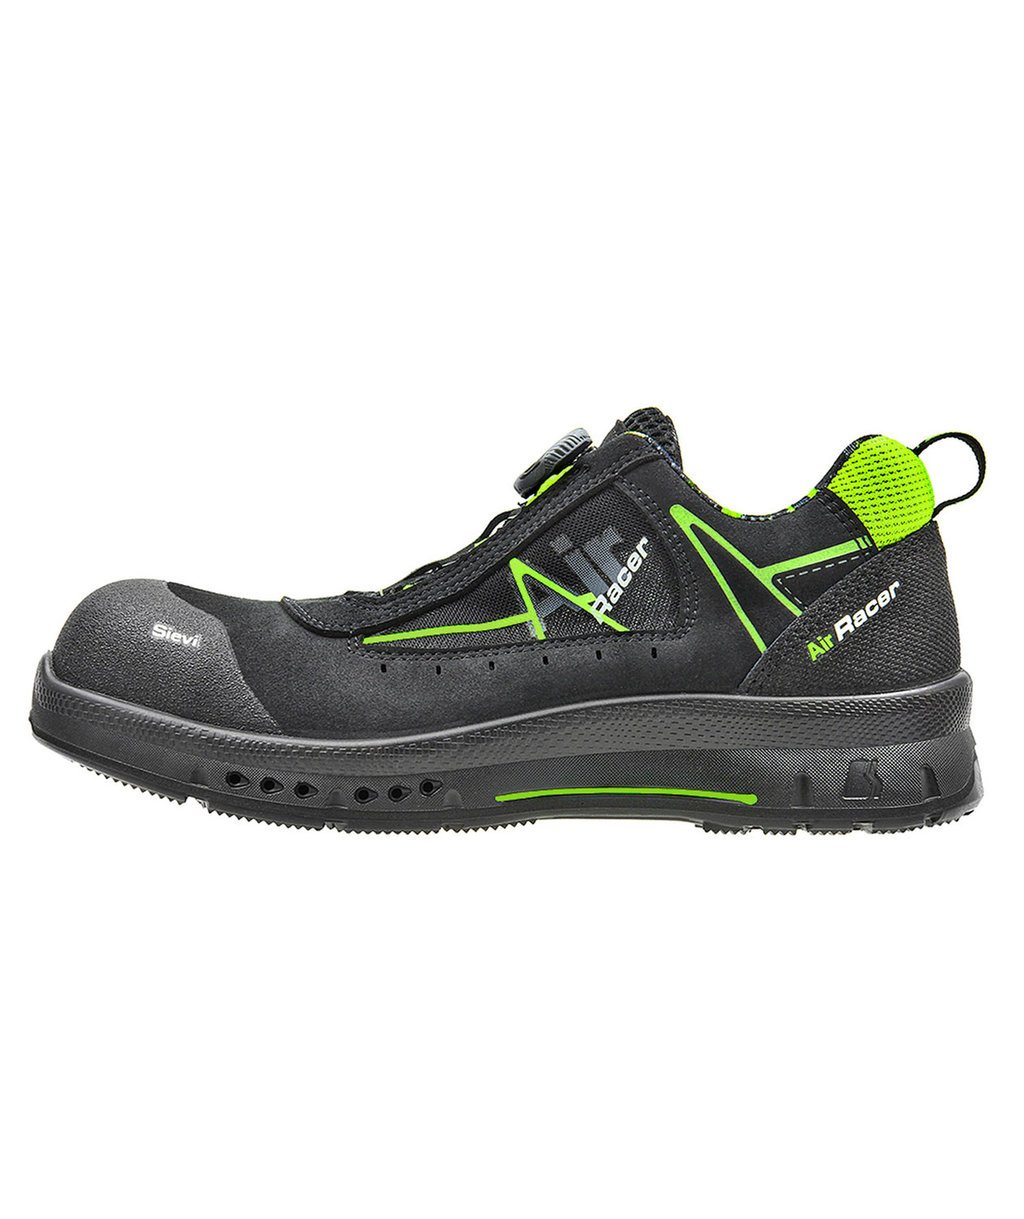 Sievi Air R2 Roller safety shoes S1, Black/Green